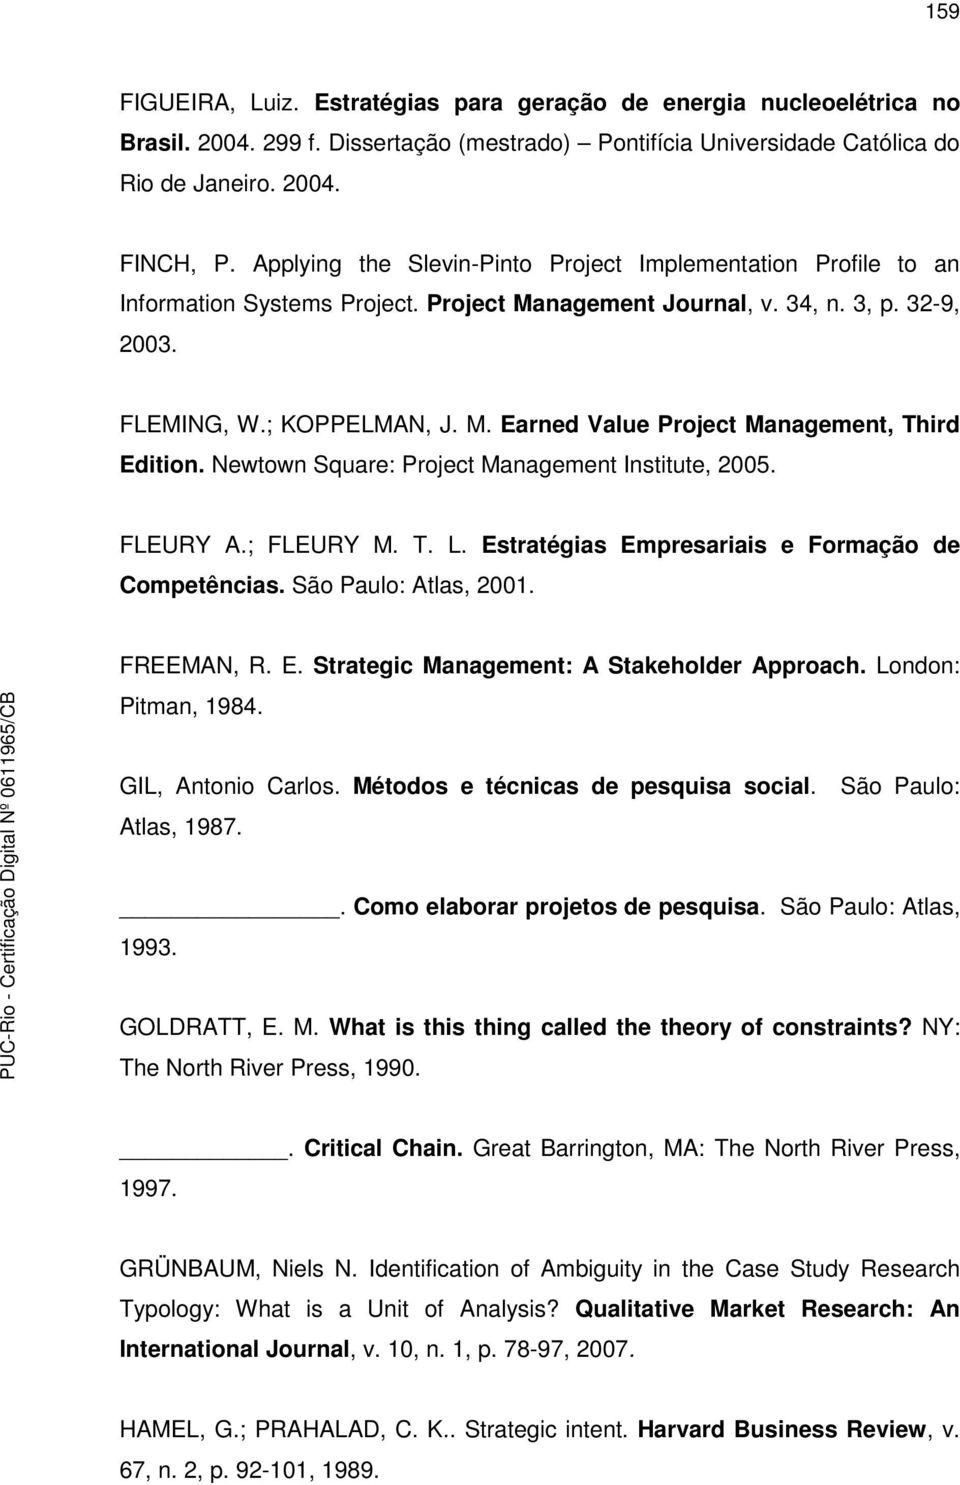 Newtown Square: Project Management Institute, 2005. FLEURY A.; FLEURY M. T. L. Estratégias Empresariais e Formação de Competências. São Paulo: Atlas, 2001. FREEMAN, R. E. Strategic Management: A Stakeholder Approach.